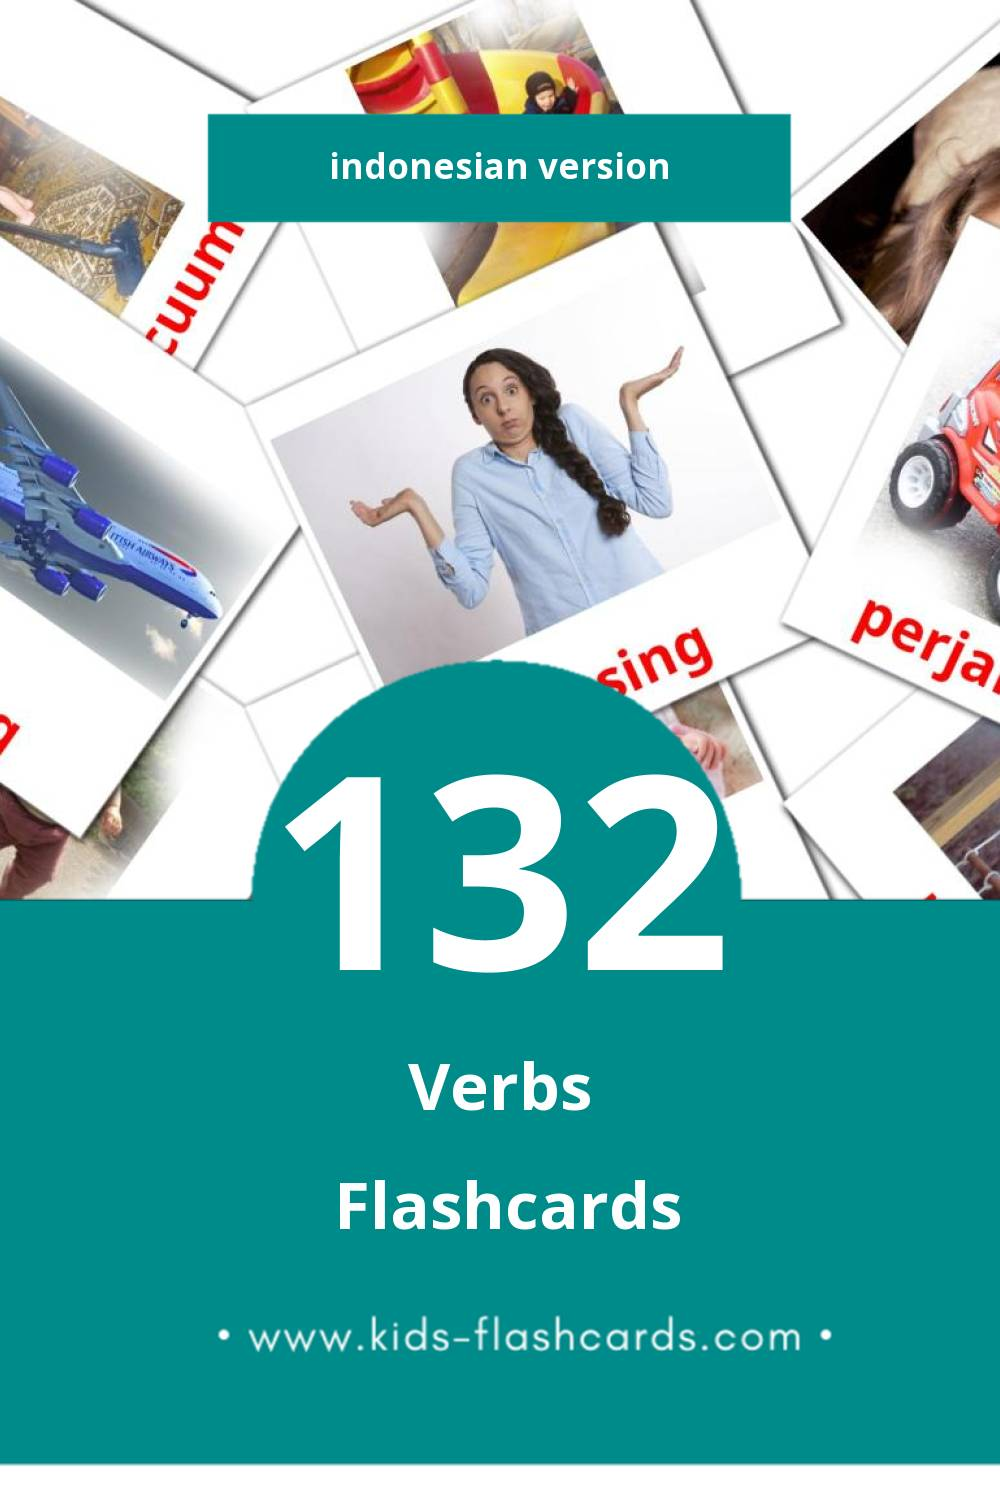 Visual verba Flashcards for Toddlers (133 cards in Indonesian)